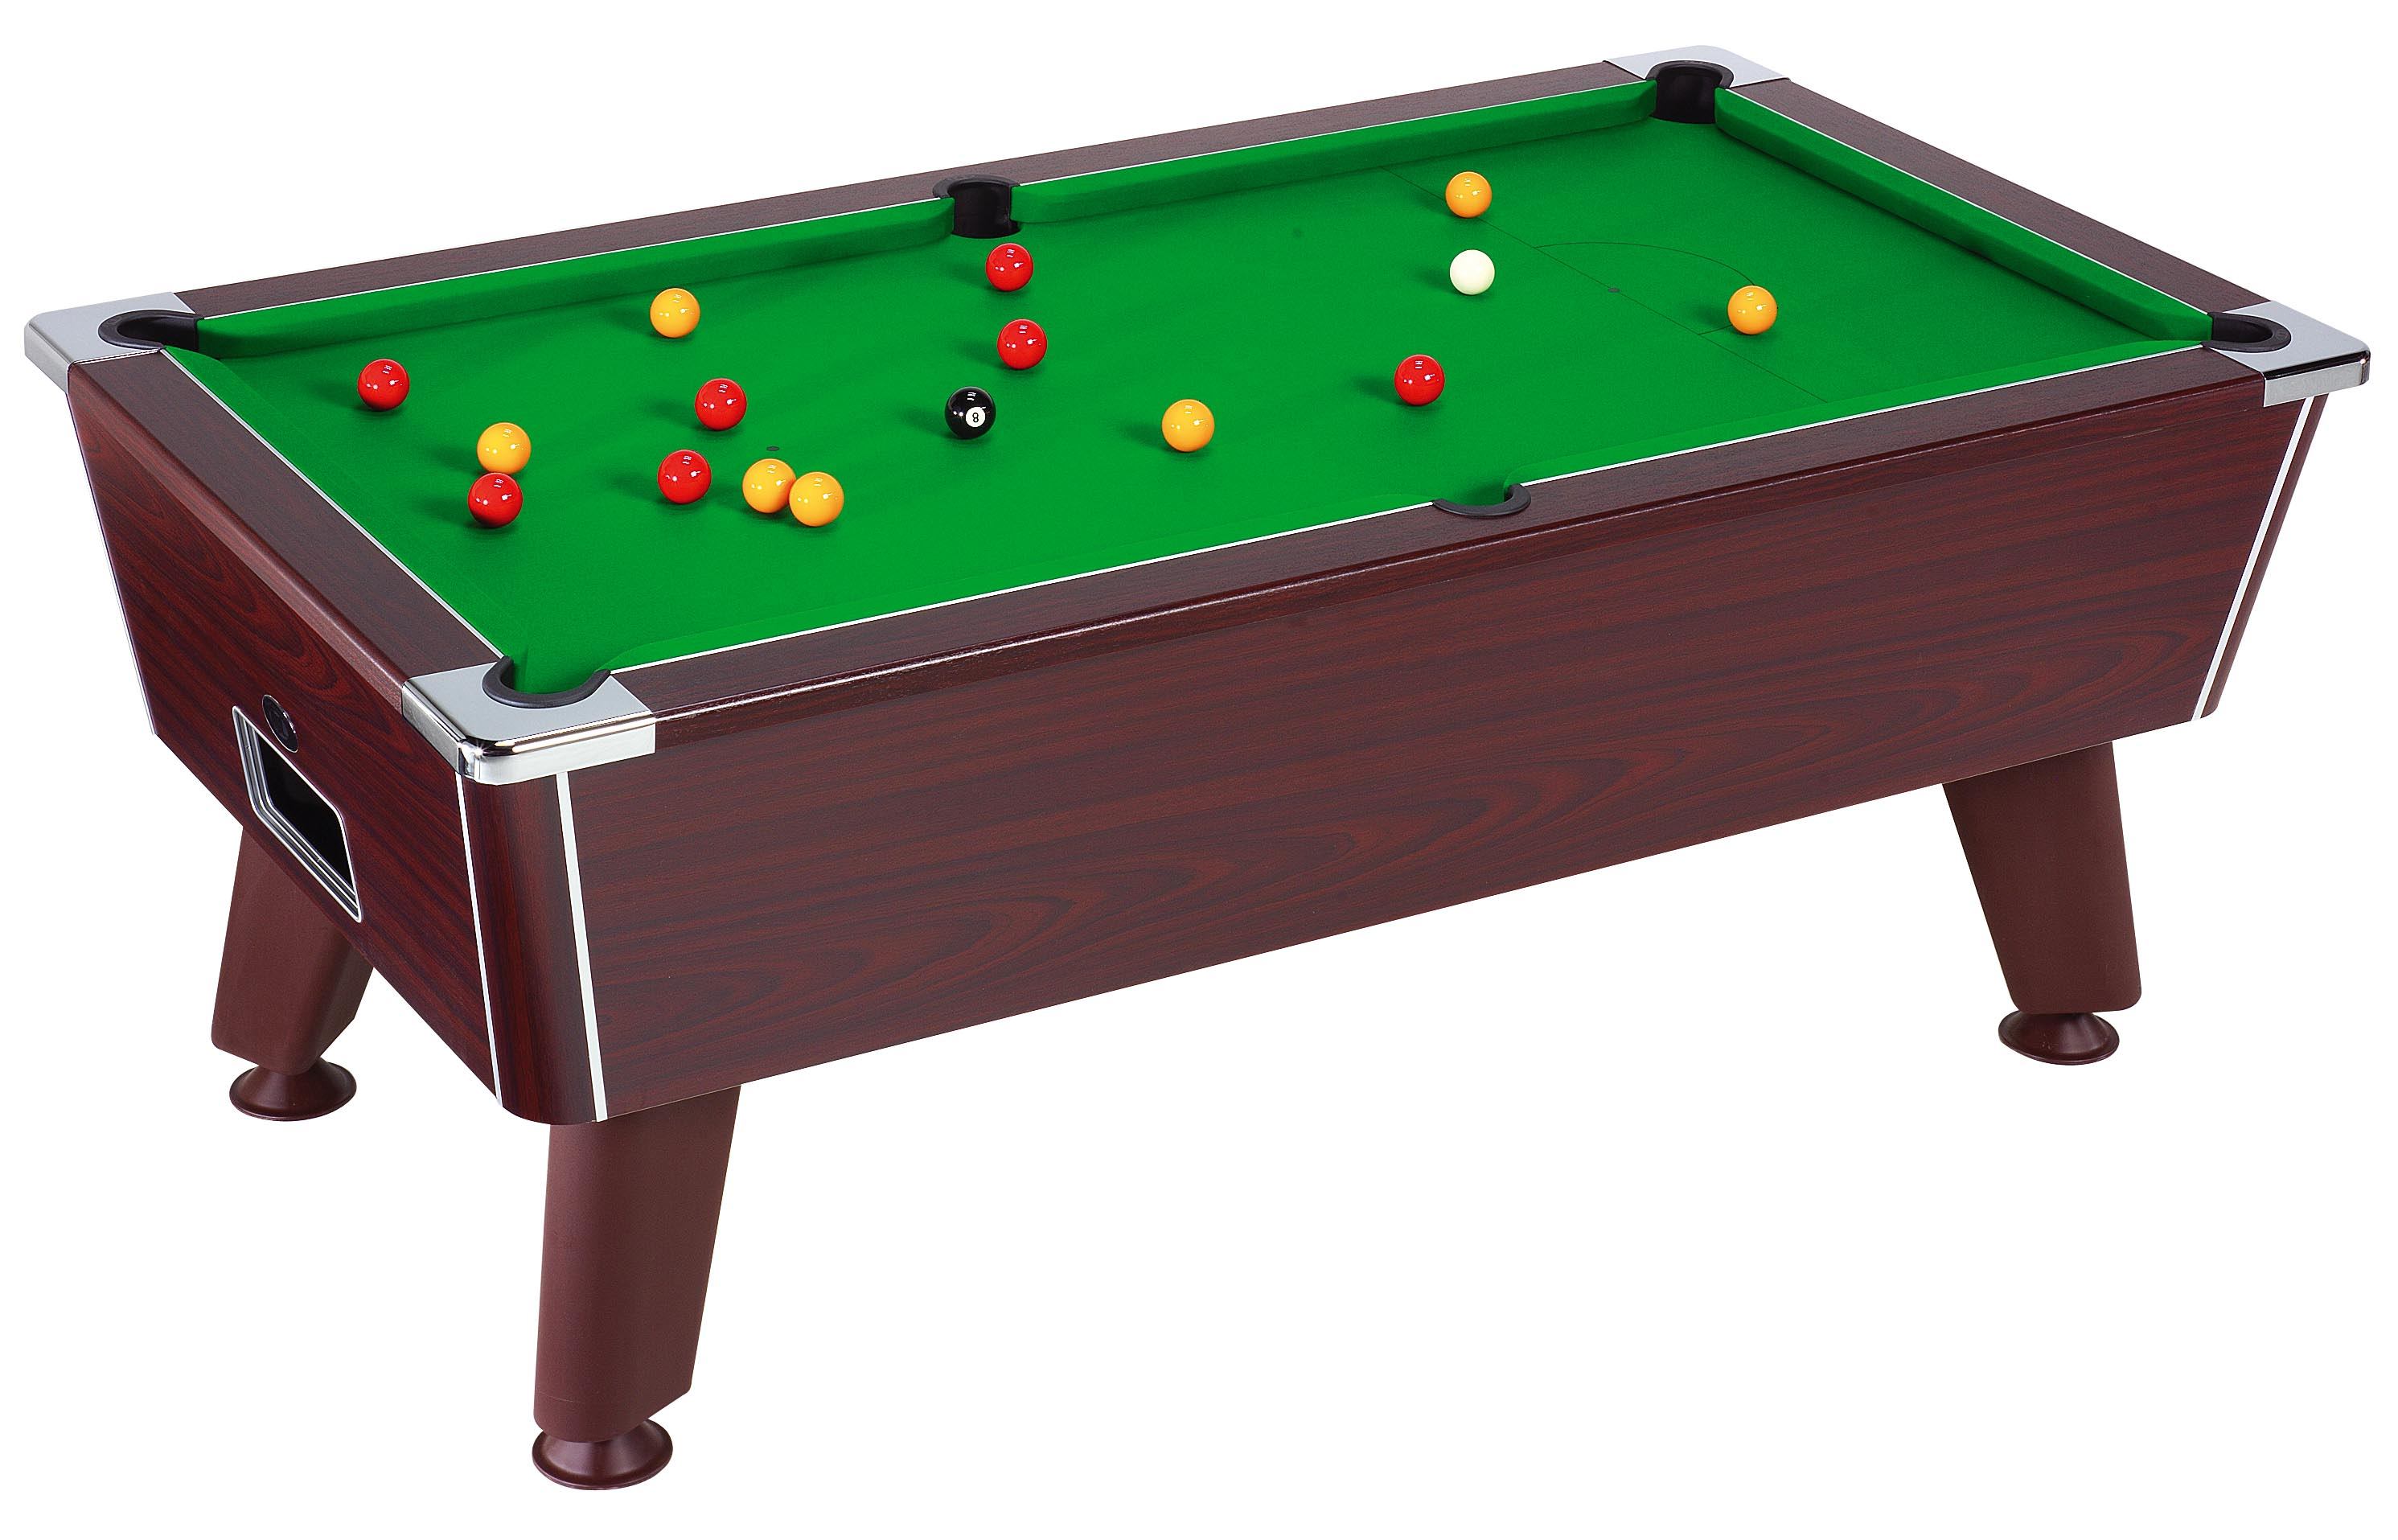 Easy snooker valencia mahogany pool - Pool table images ...